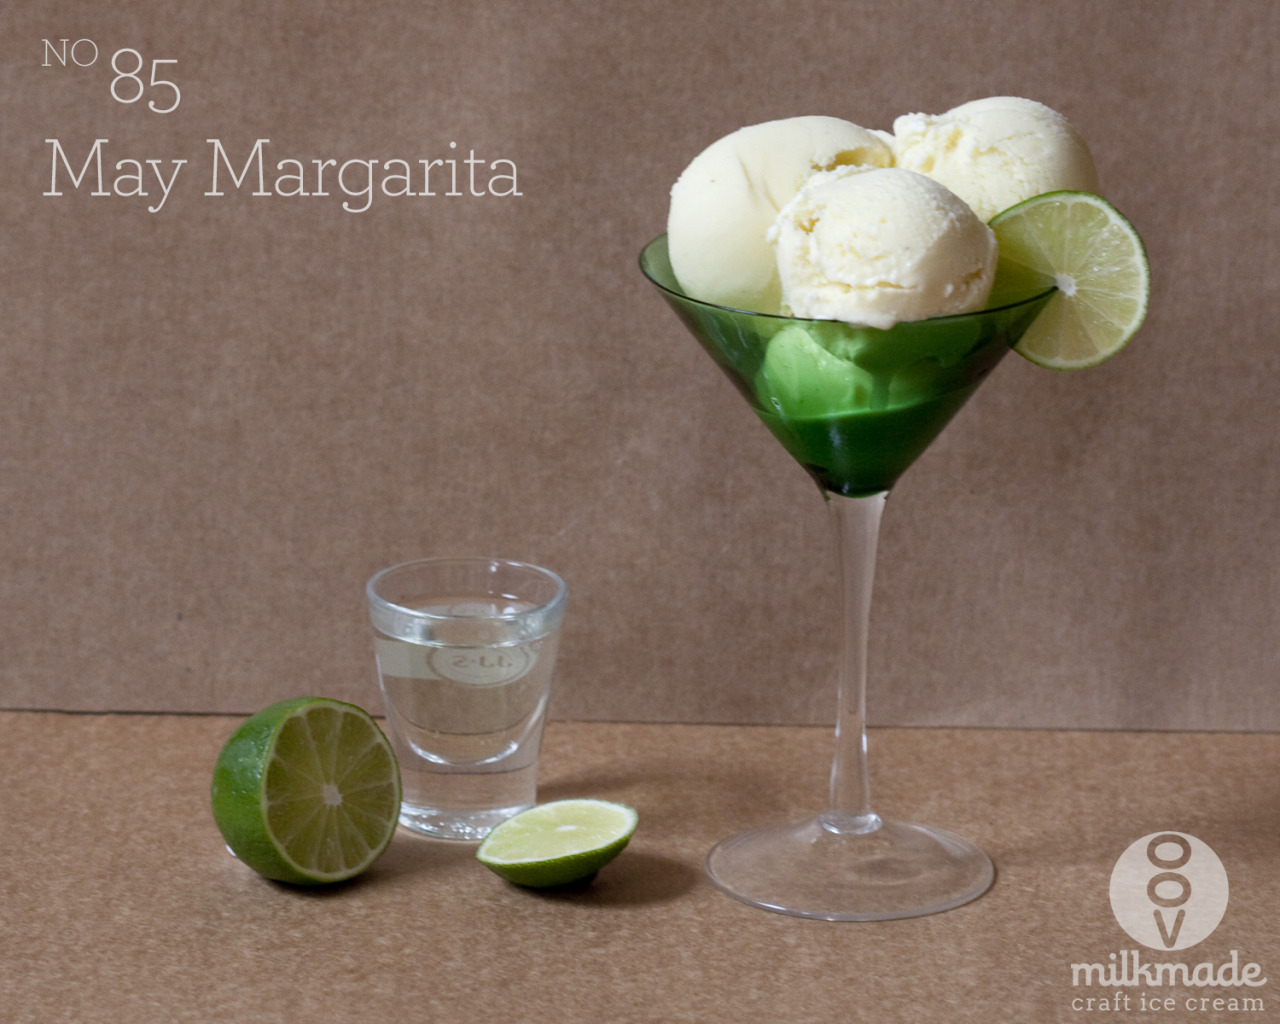 The making of flavor #85, Margarita Ready for the weekend? Ready for Cinco de Mayo? Ready to sip down a refreshing margarita on a warm(ish) early evening?  Ready to juice hundreds of limes and hand-craft pint after pint of Margarita ice cream? Oh.. no? Well luckily we are. Happy weekend everyone. Stay tuned for our step by step on our first flavor of the month - May Margarita.